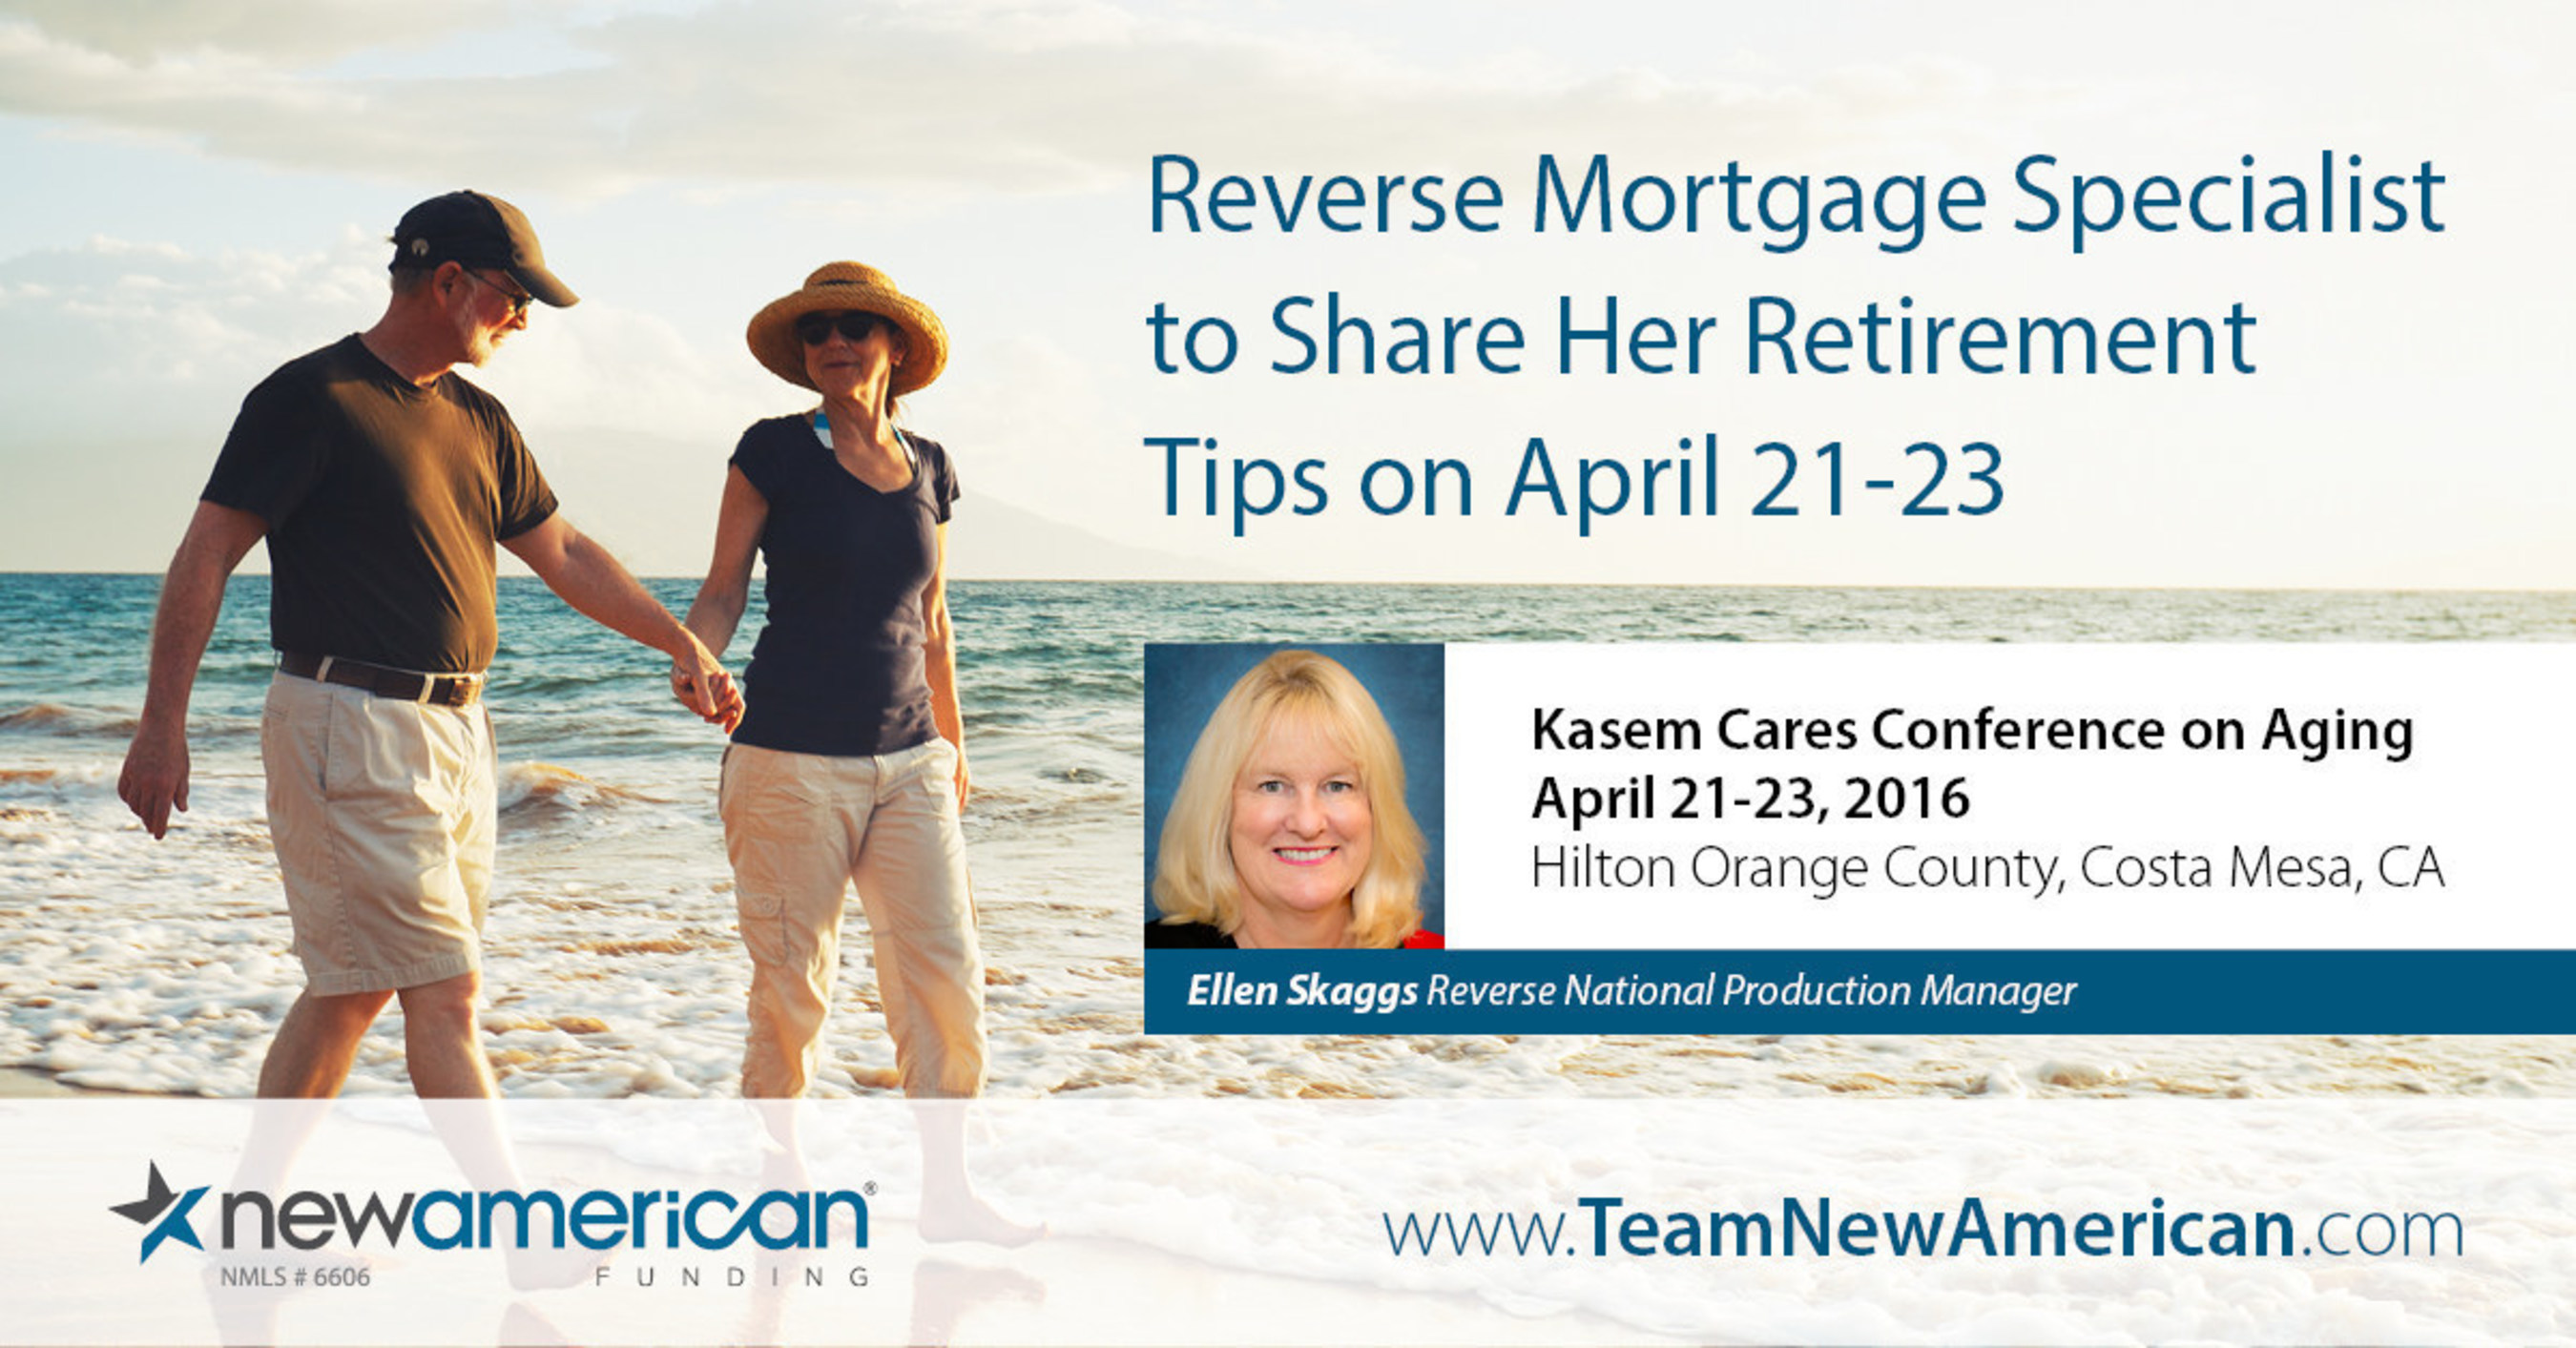 New American Funding's Ellen Skaggs to Speak at Kasem Cares Conference on Aging.